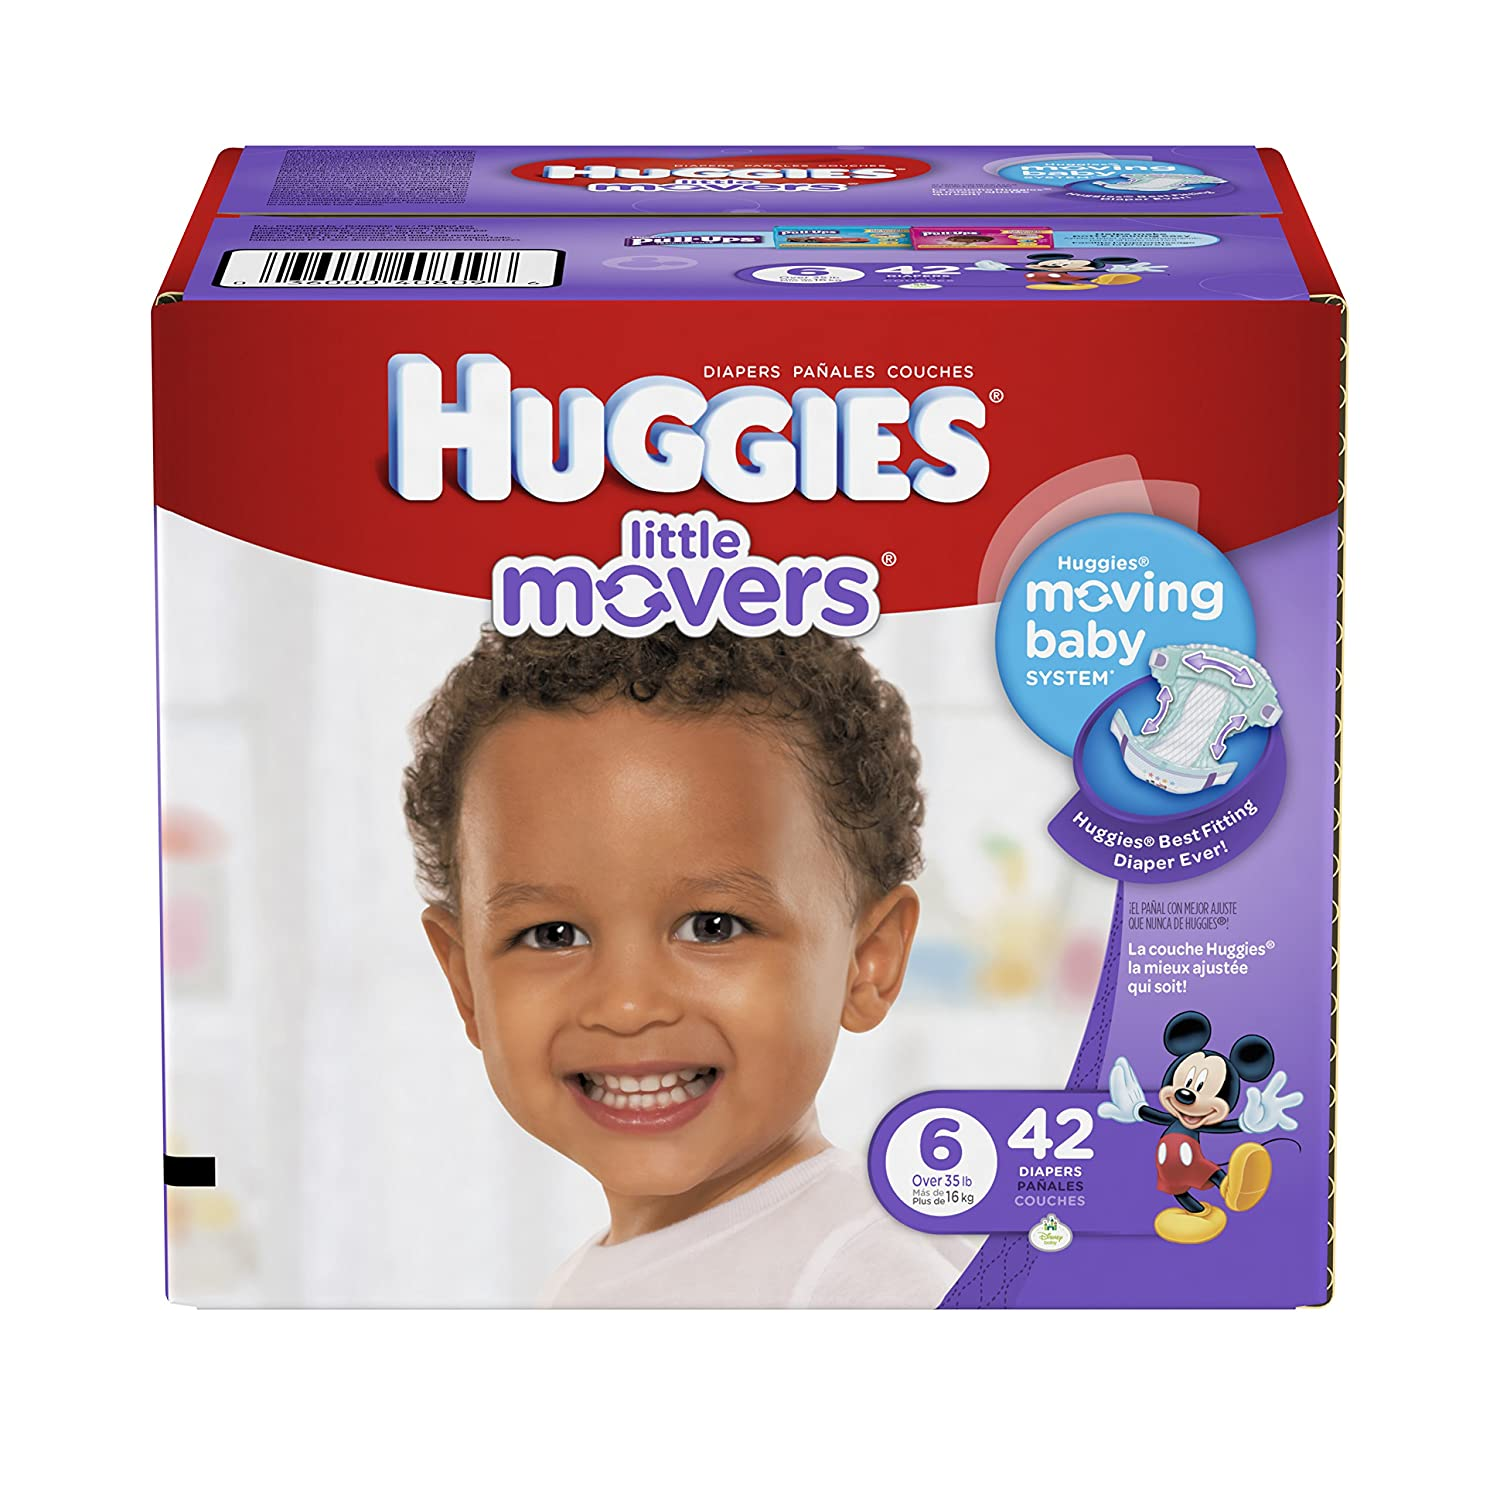 Amazon.com: Huggies Little Movers Diapers - Size 6 - 42 ct: Health & Personal Care